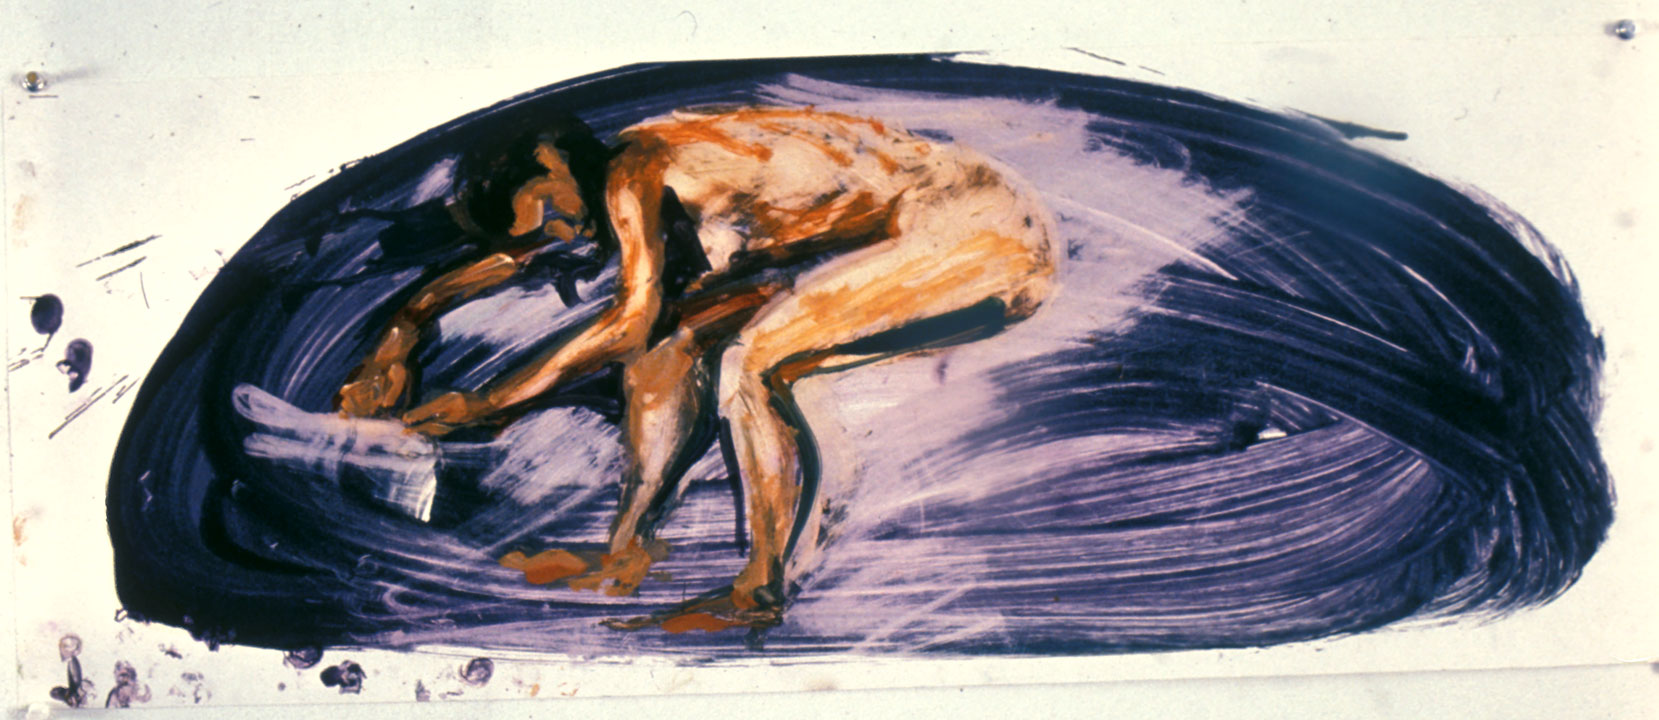 Study for Floating Island, 1985. Oil on chromecoat Paper 12 x 32 inches